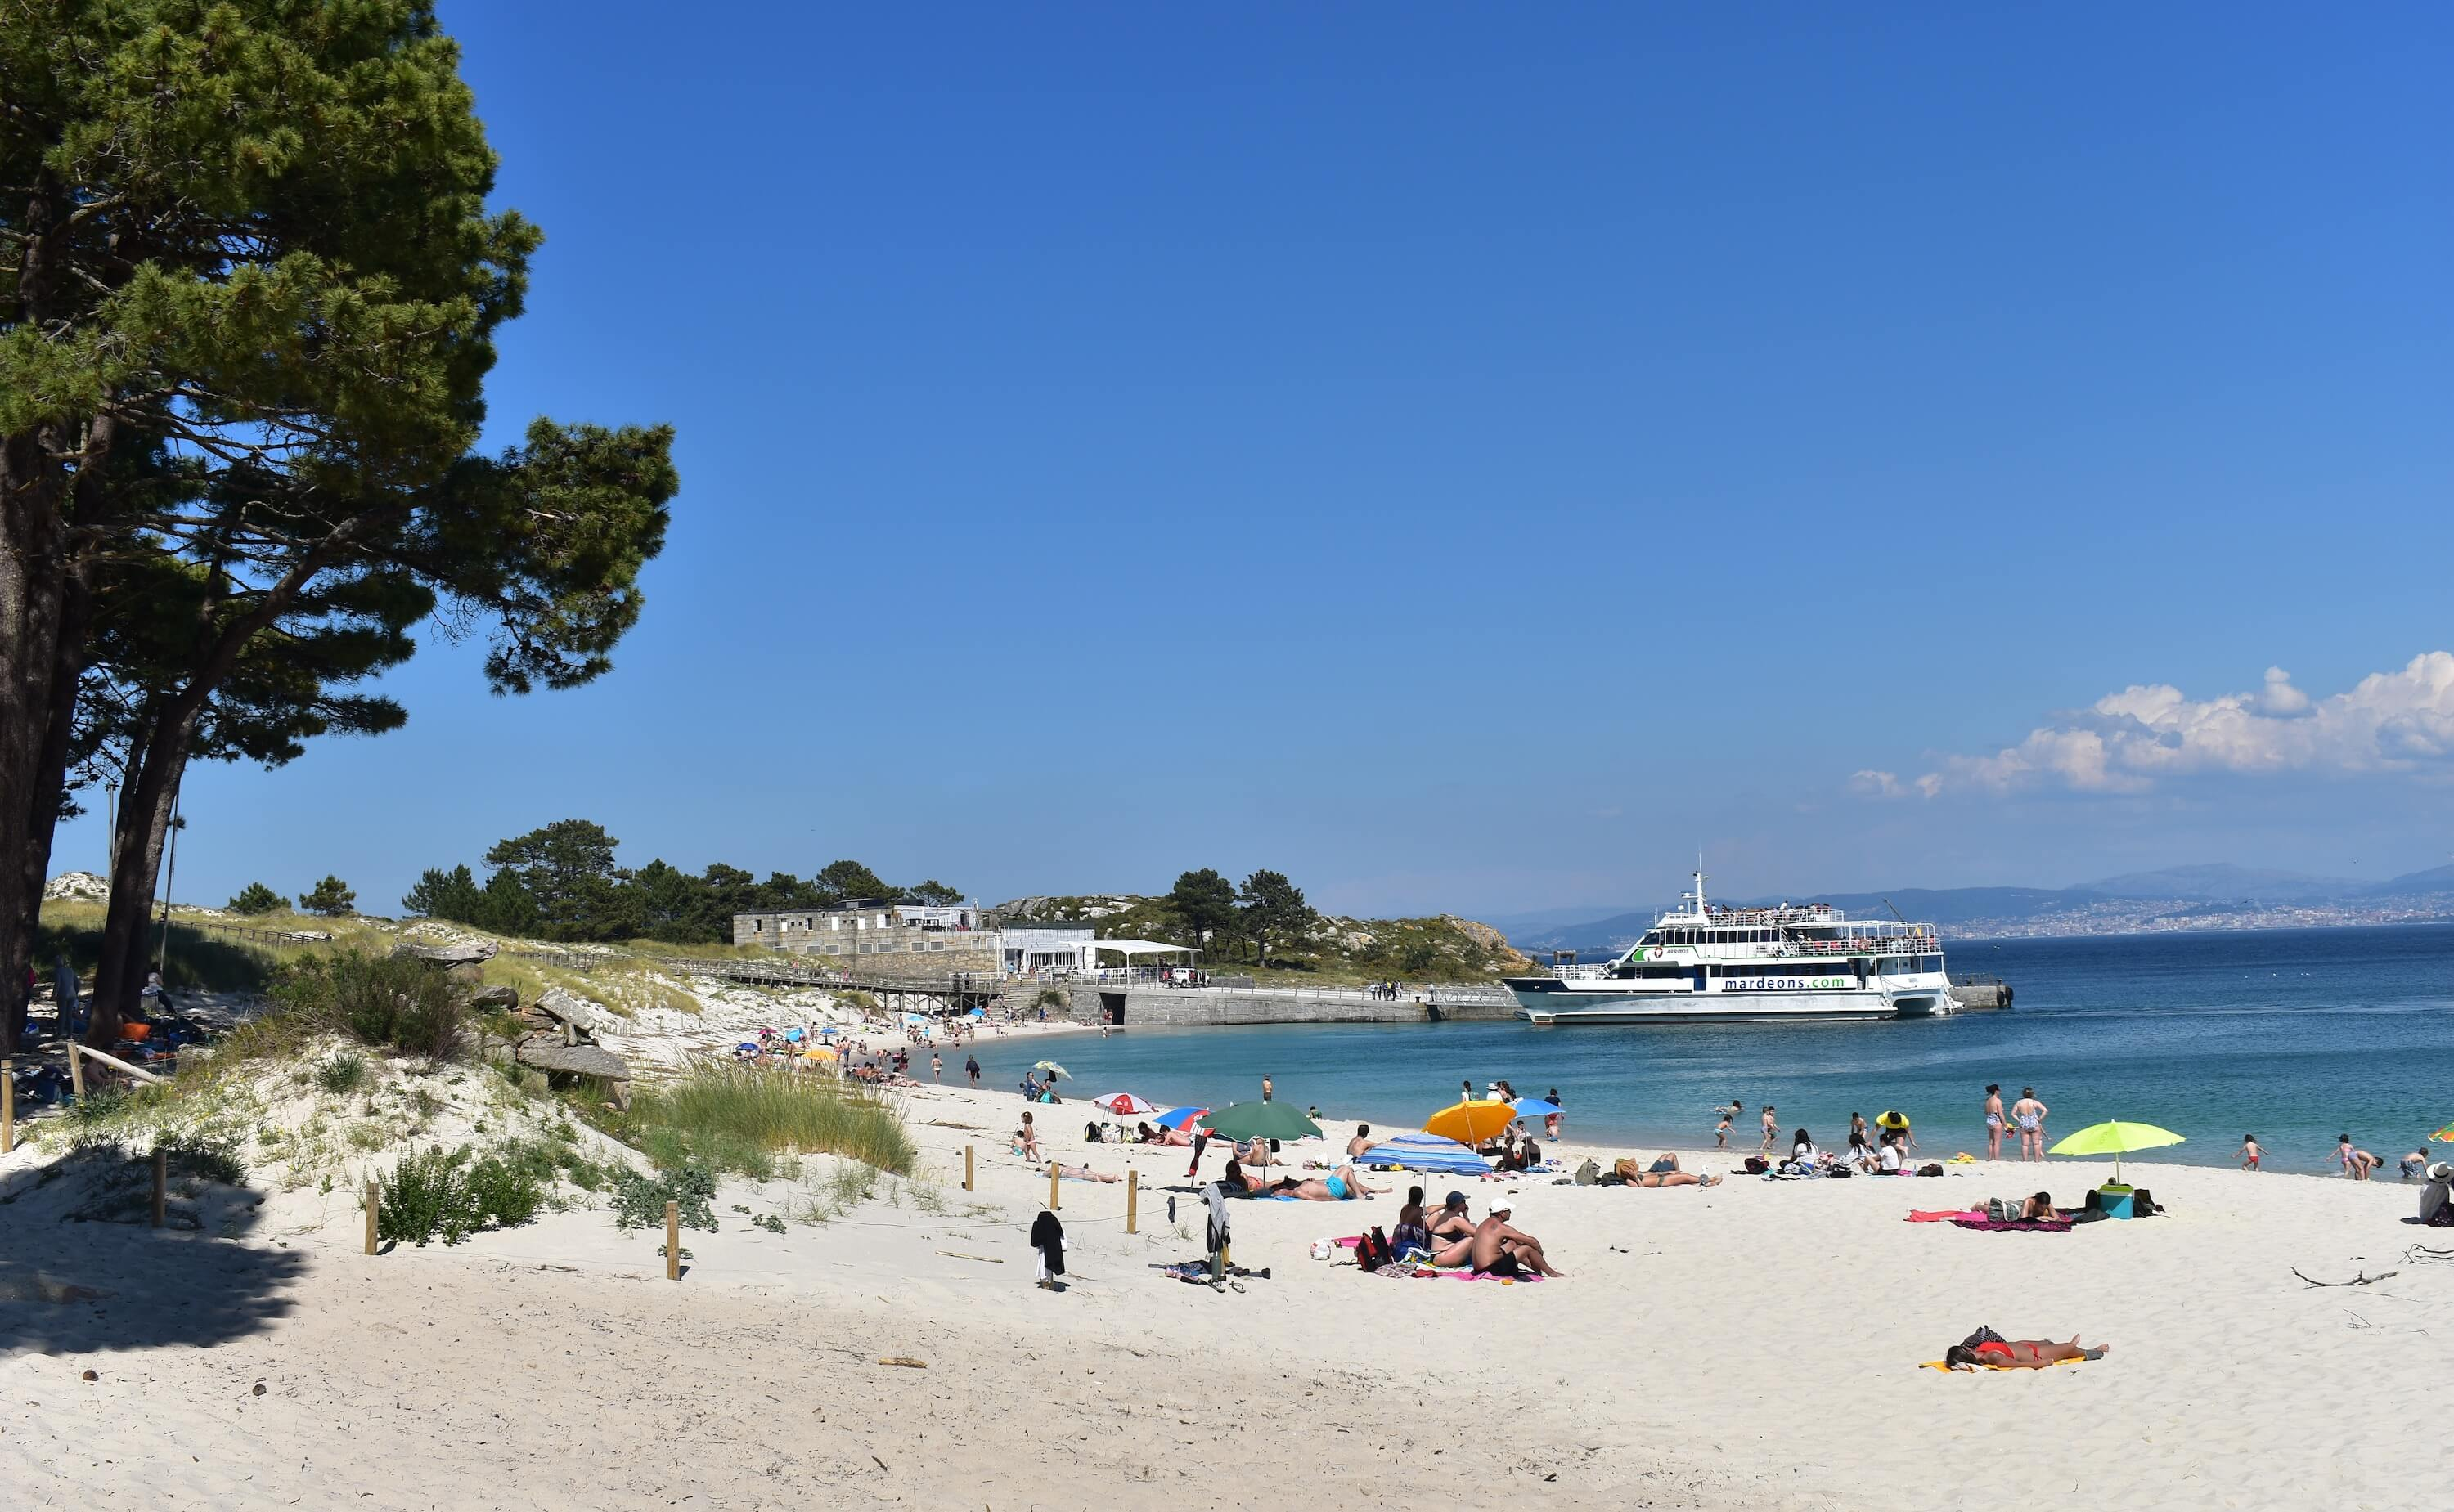 20 Photos to Inspire You to Visit the Cies Islands - Galicia Spain Travel Relaxing at Rodas Beach